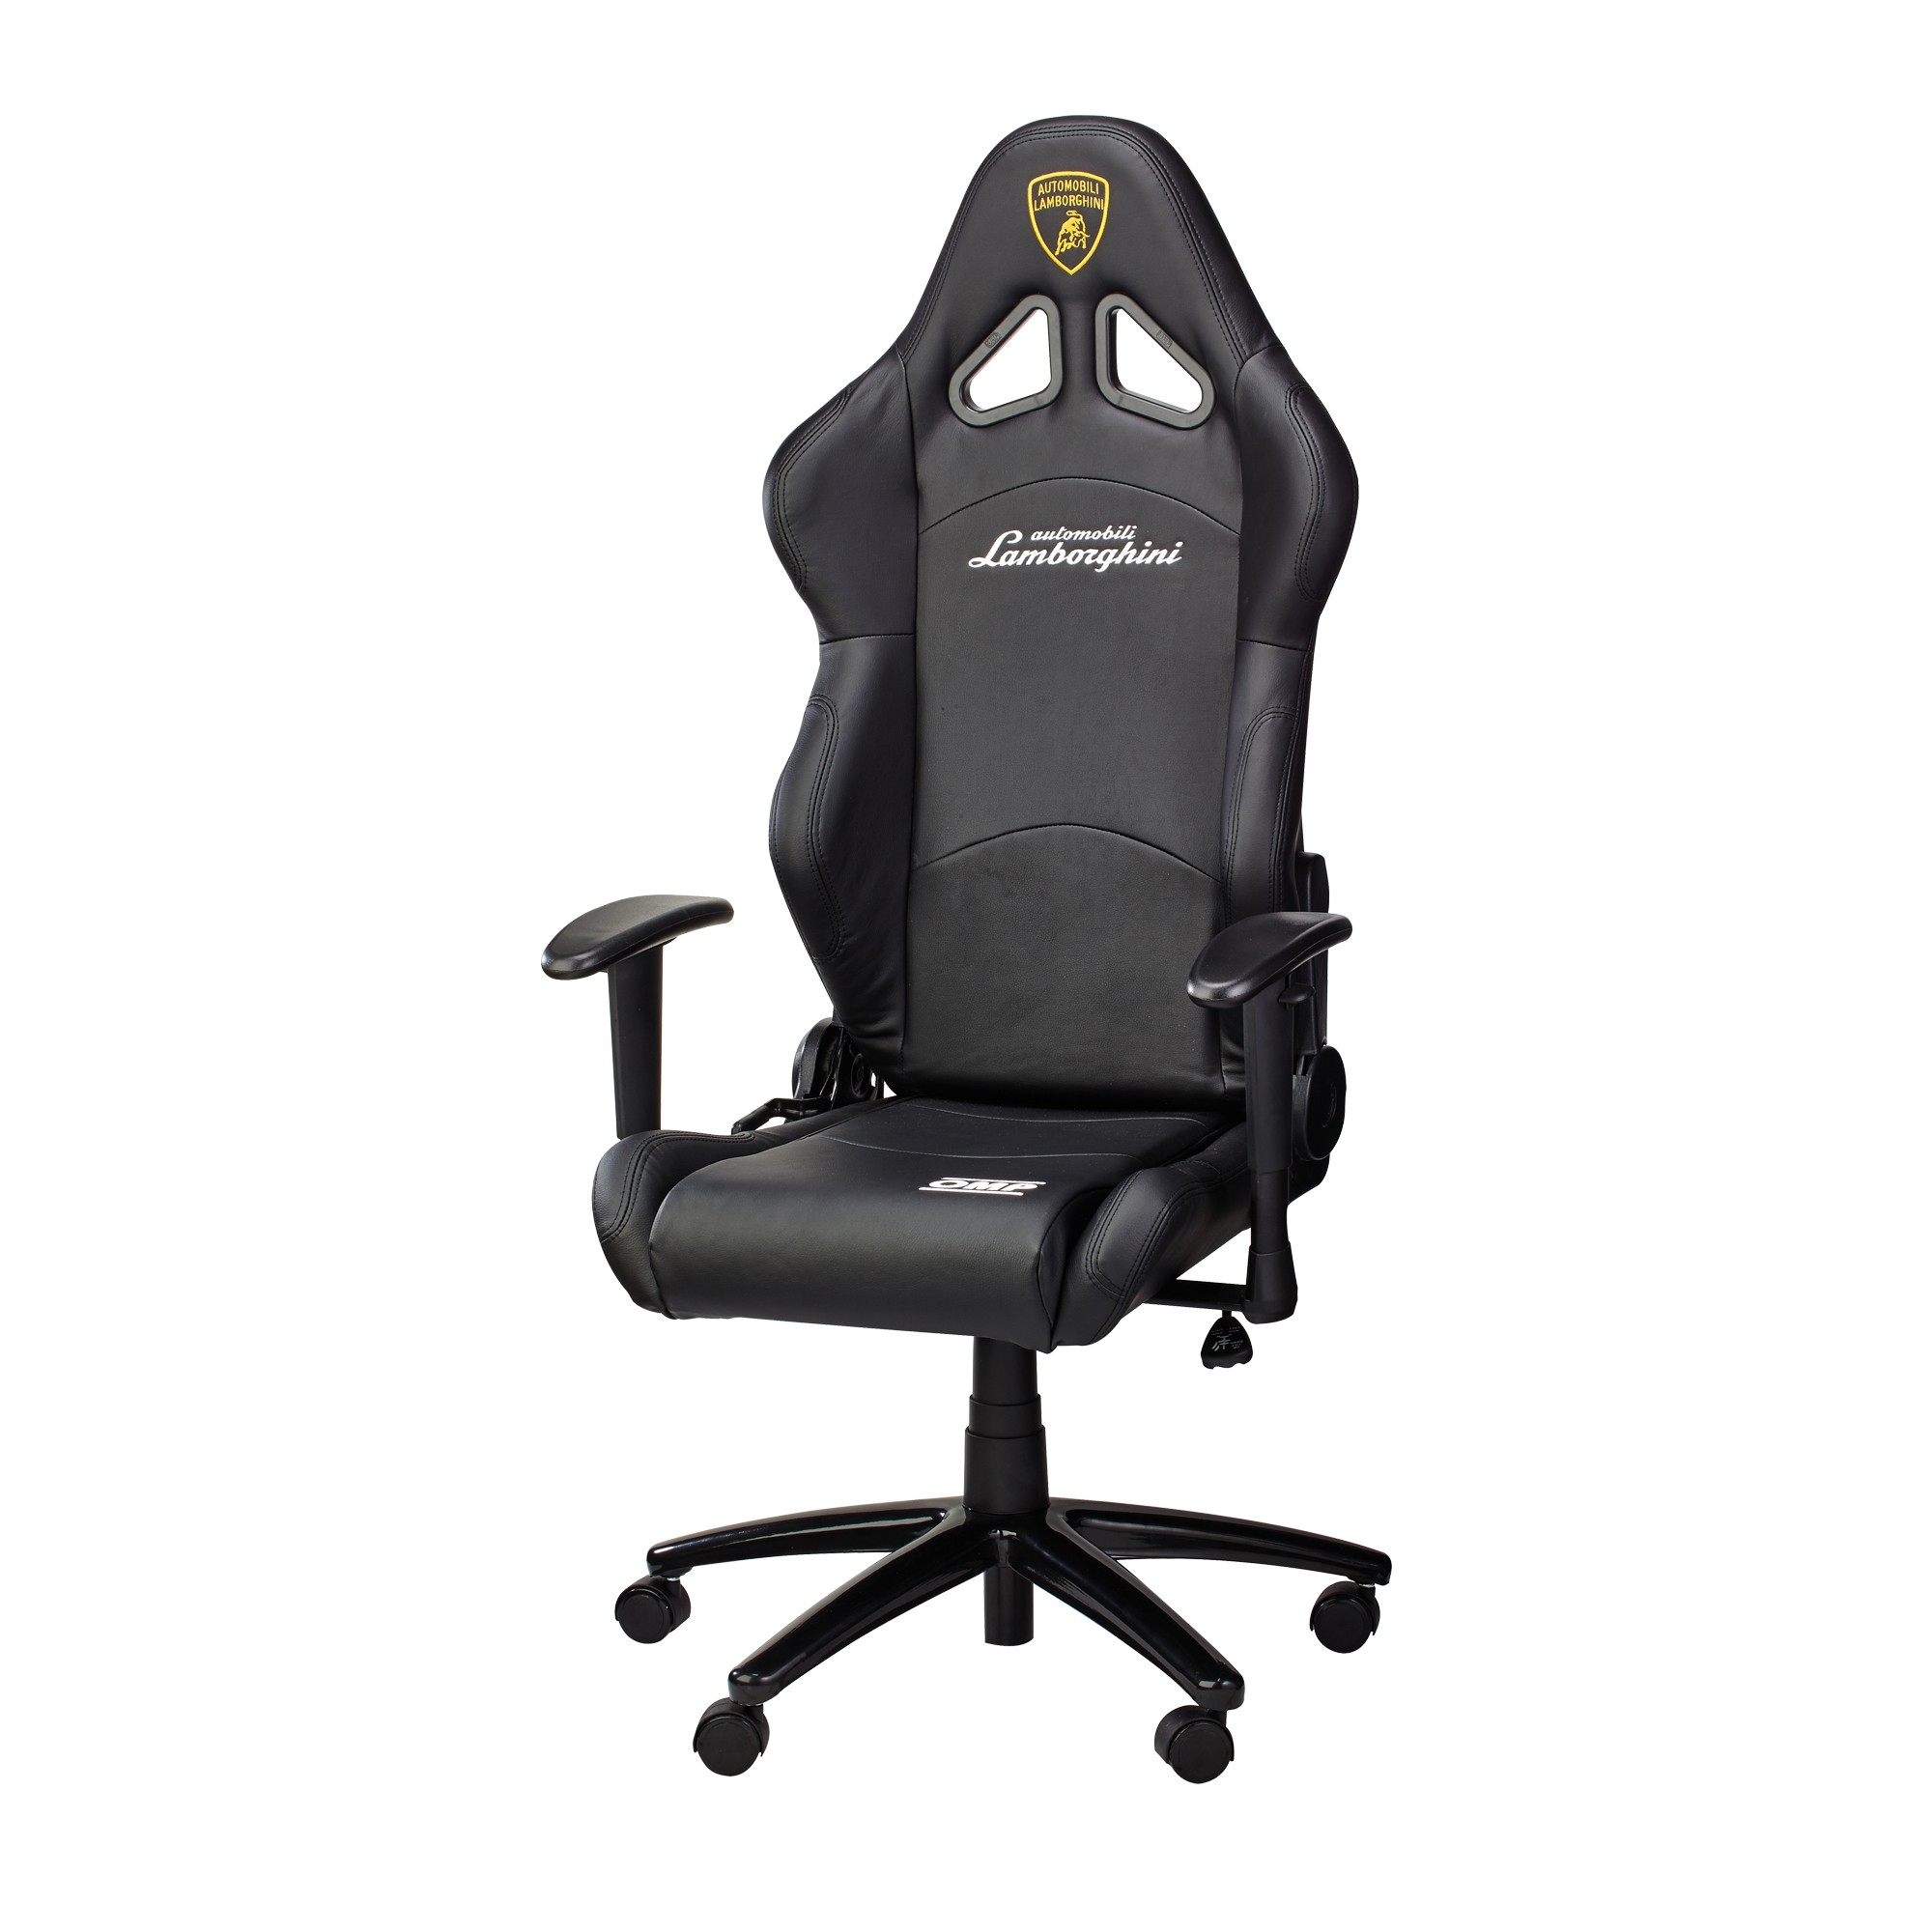 CHAIR OMP AUTOMOBILI LAMBORGHINI